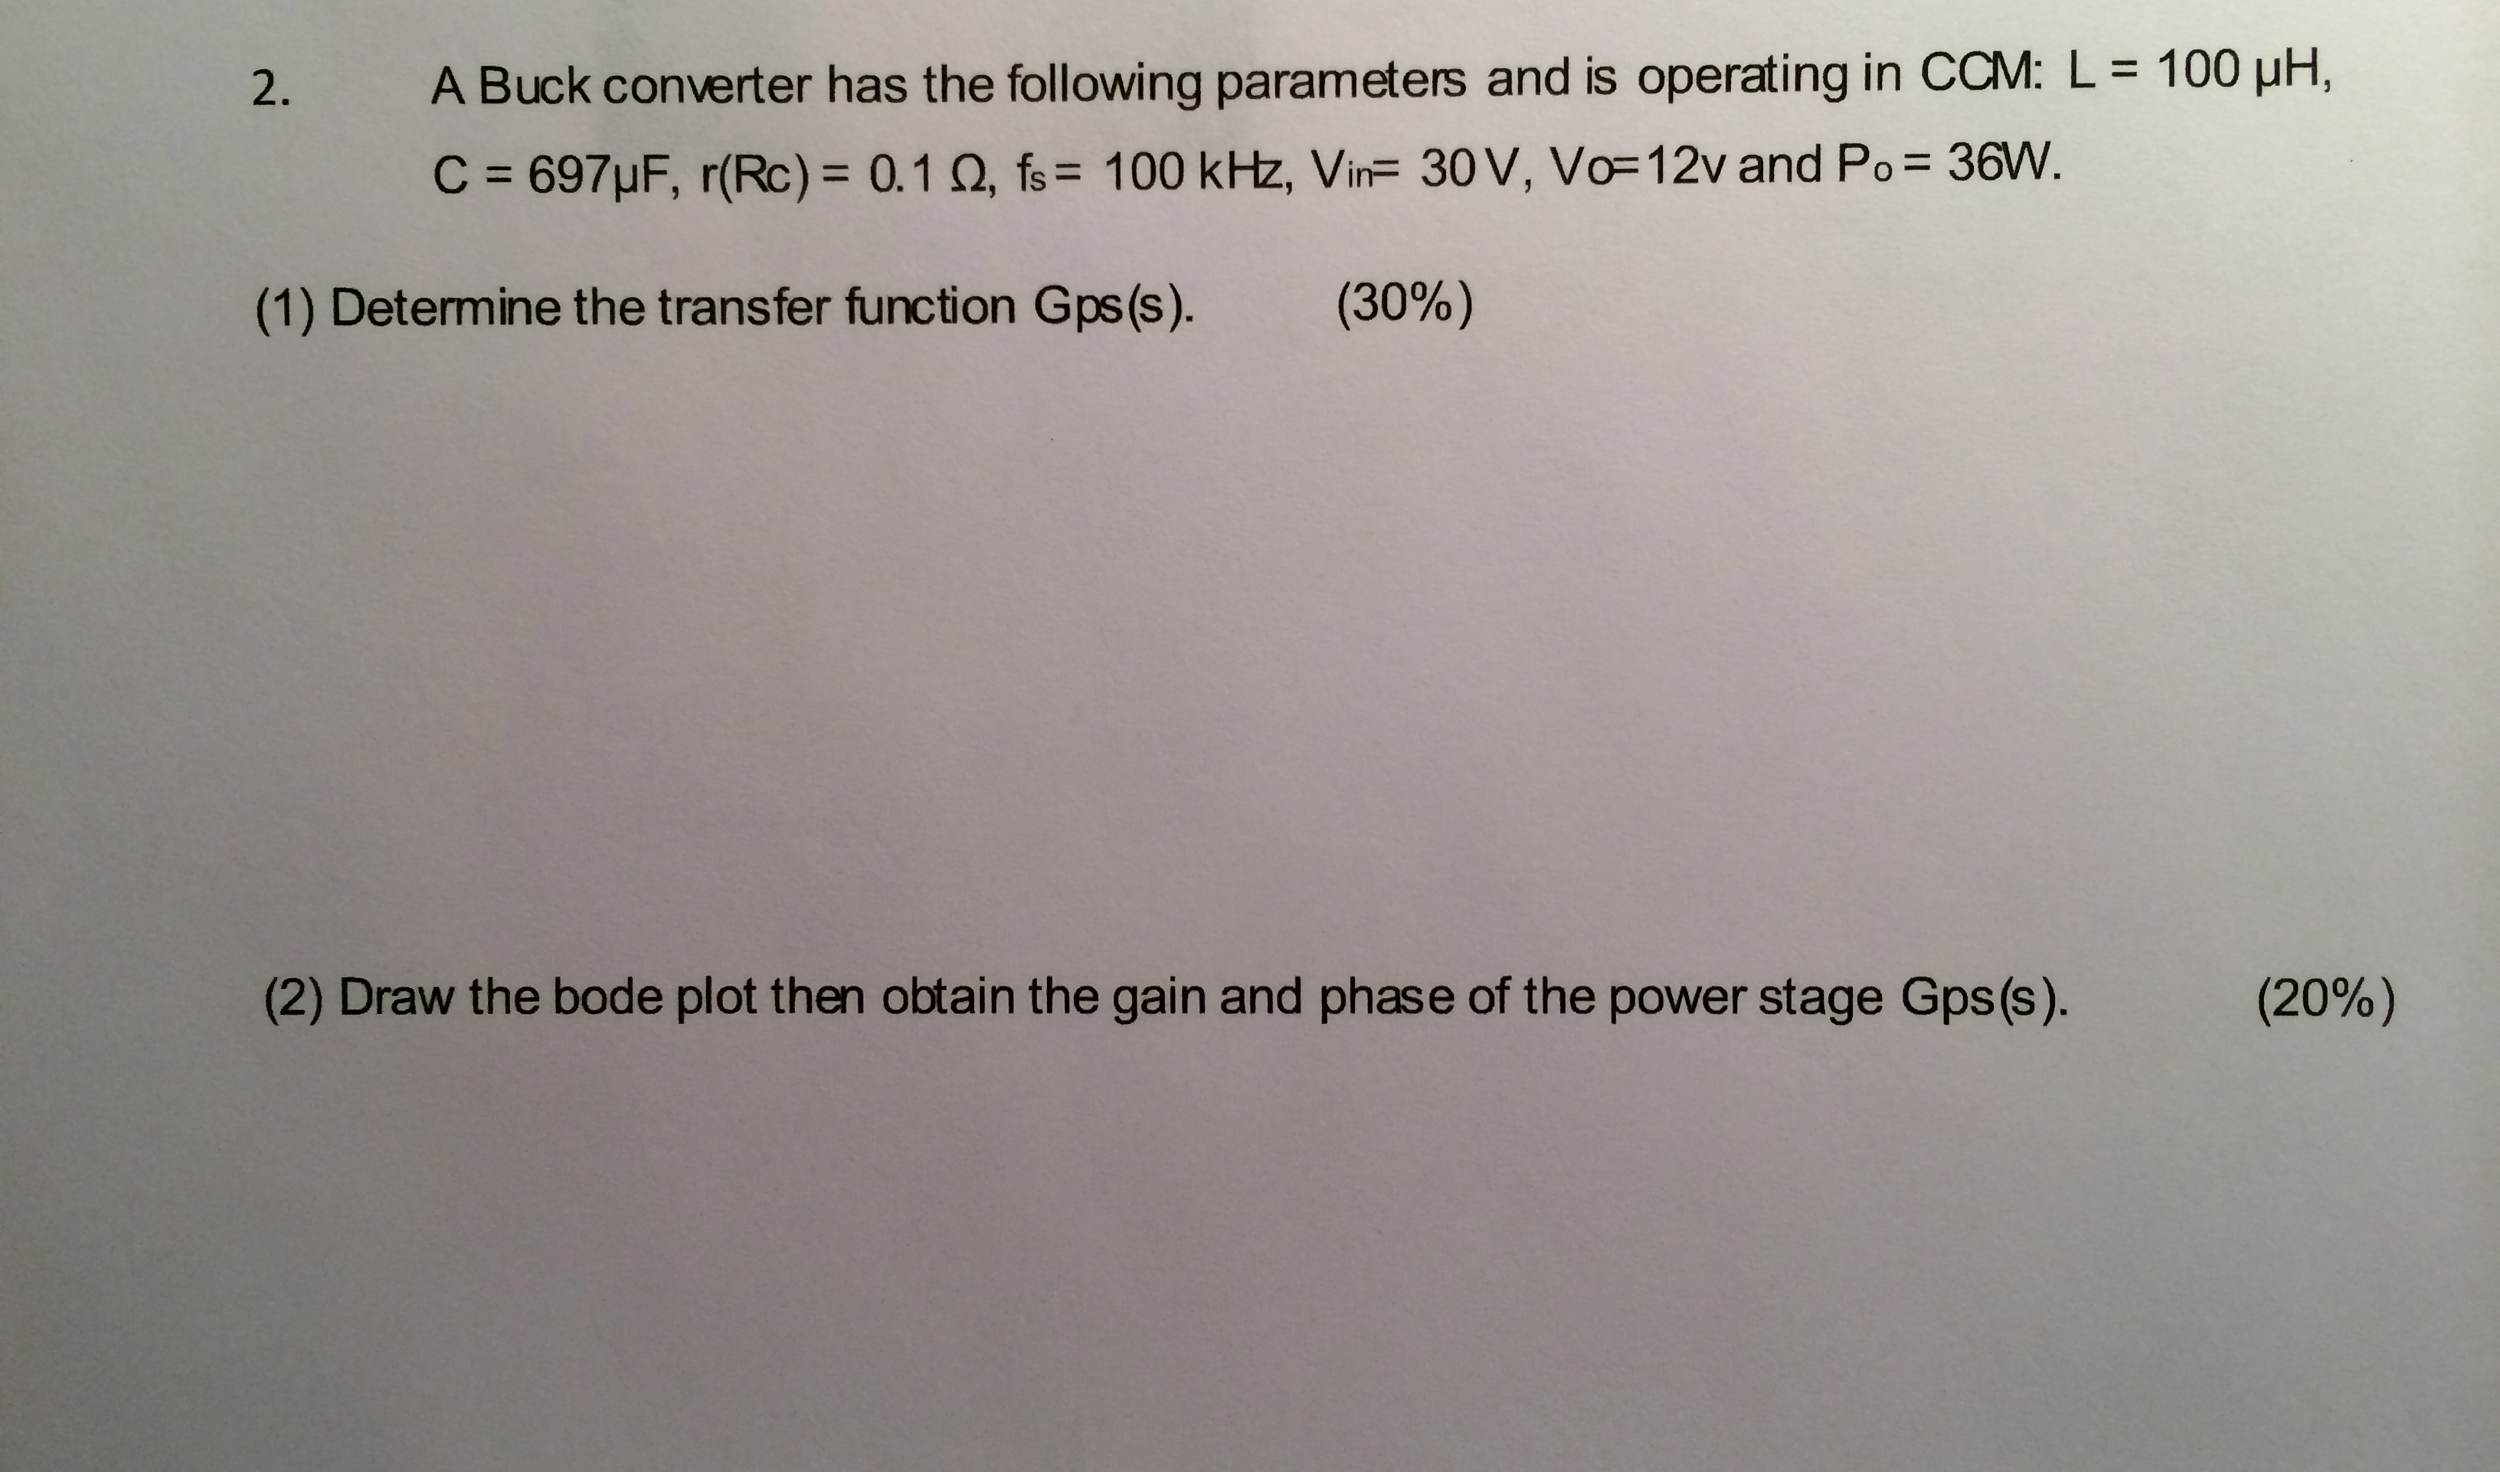 A Buck converter has the following parameters and